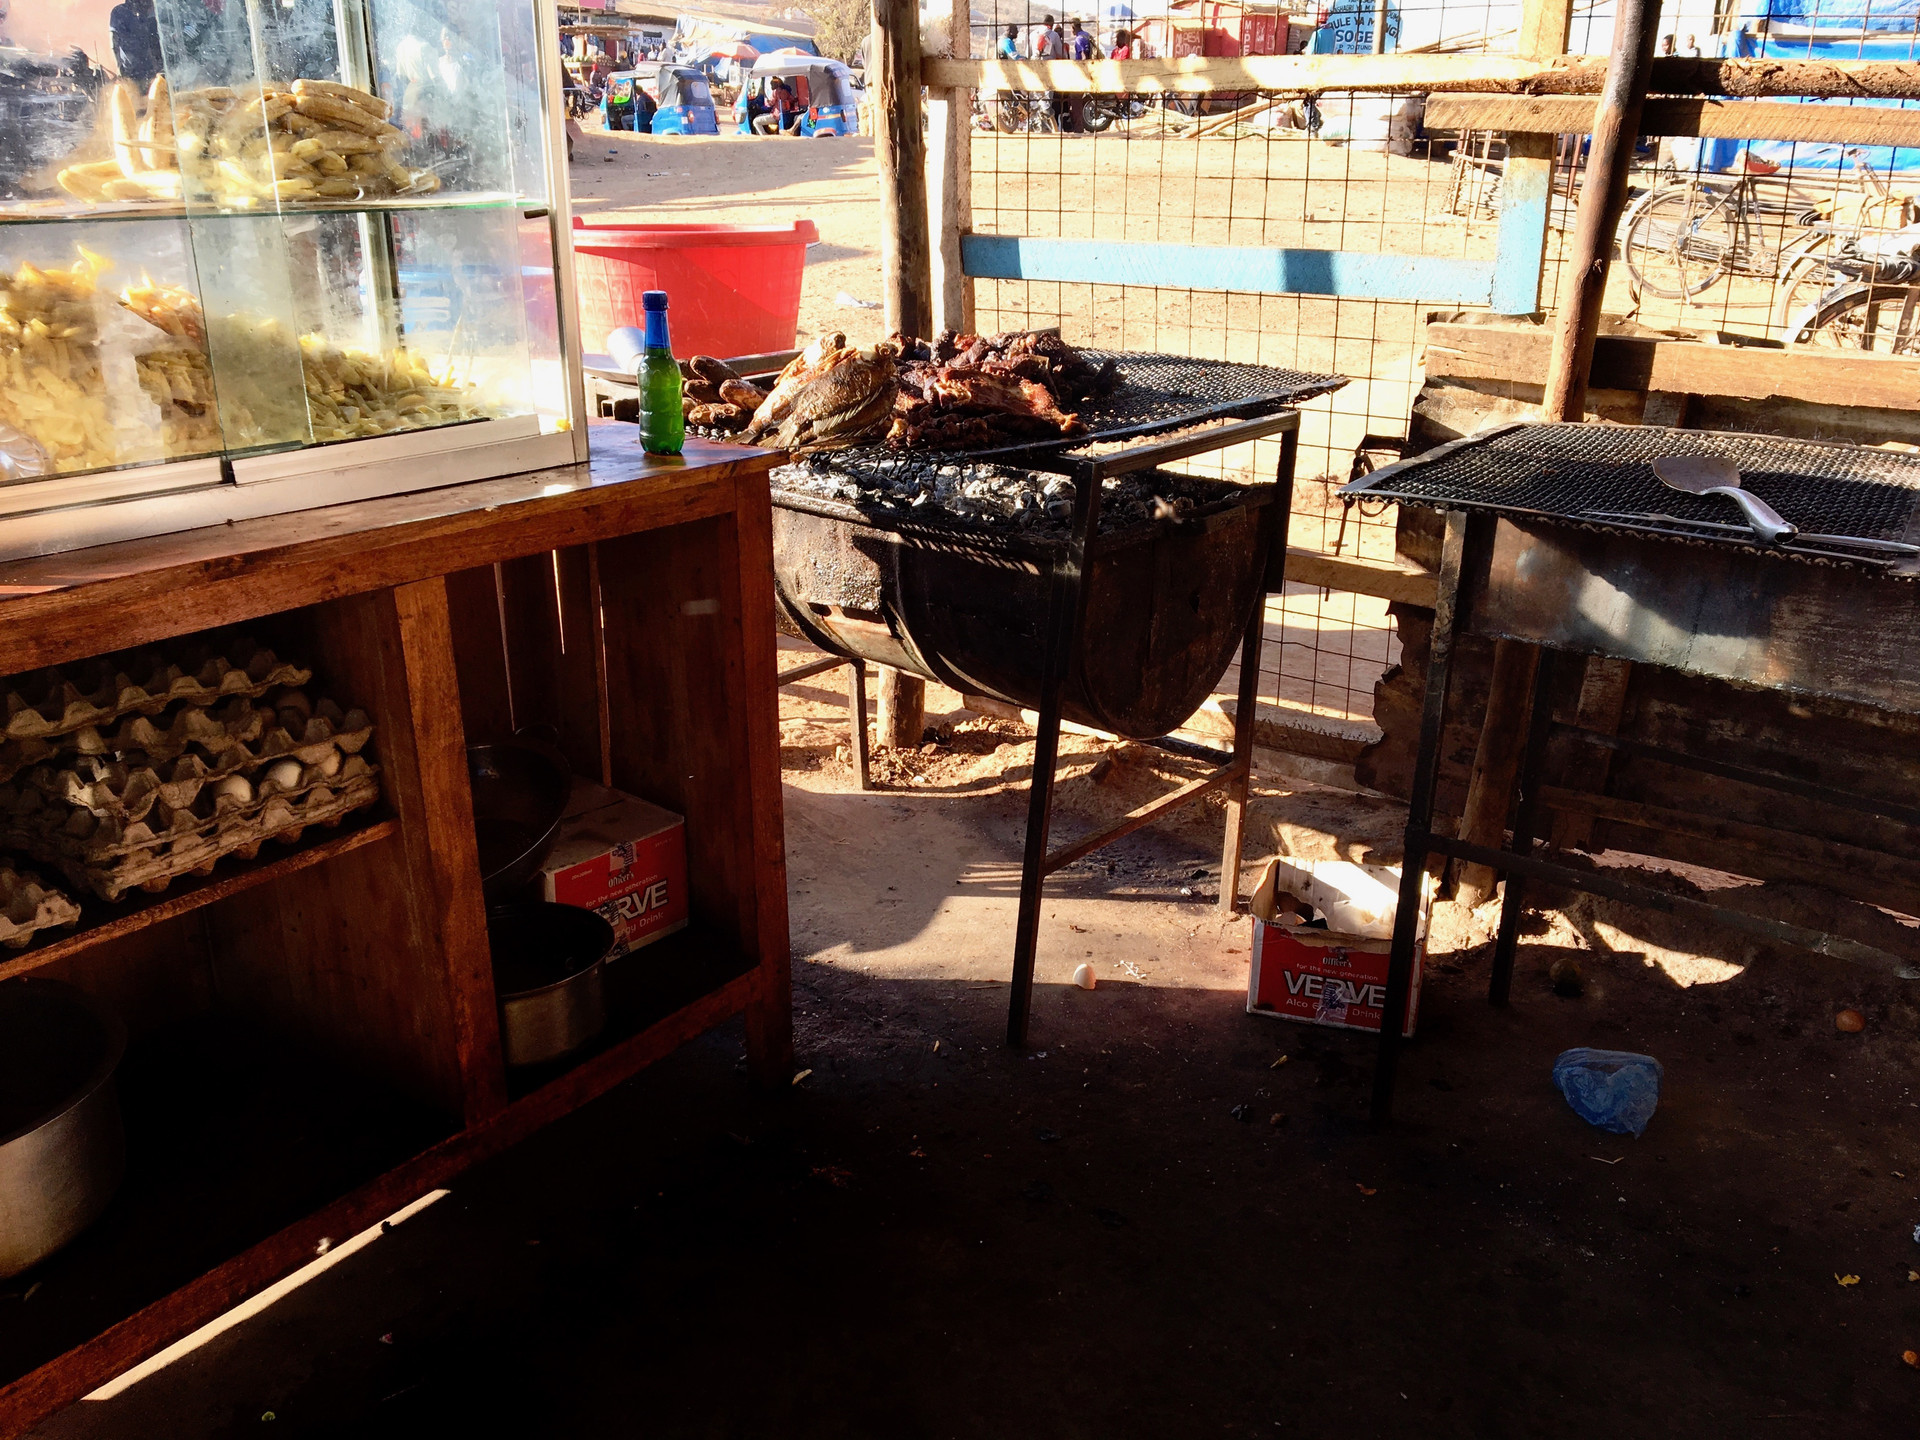 An open air restaurant's kitchen in our evangelism area